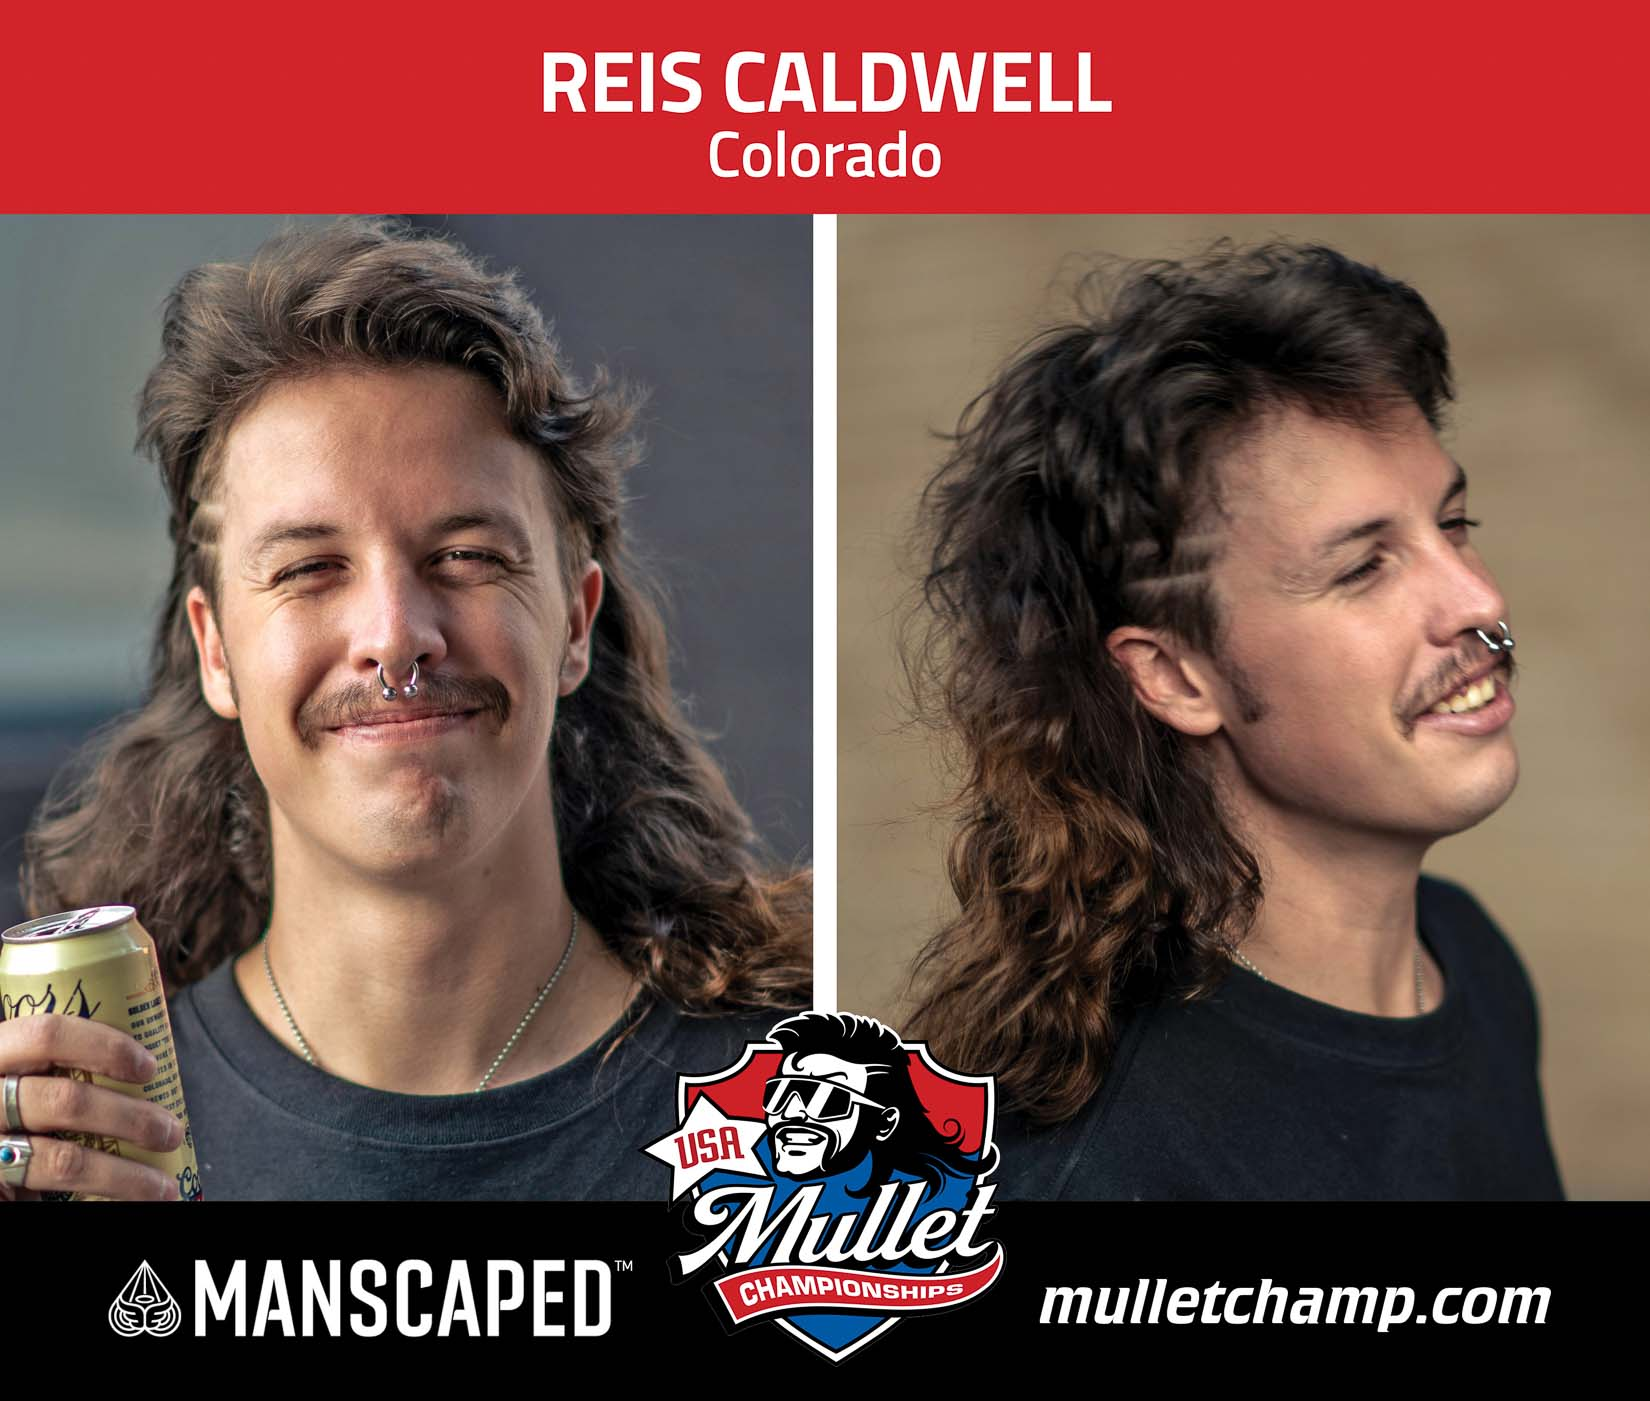 Mullet-Champ-USA-Mens-Open-Division-2021-Reis-Caldwell